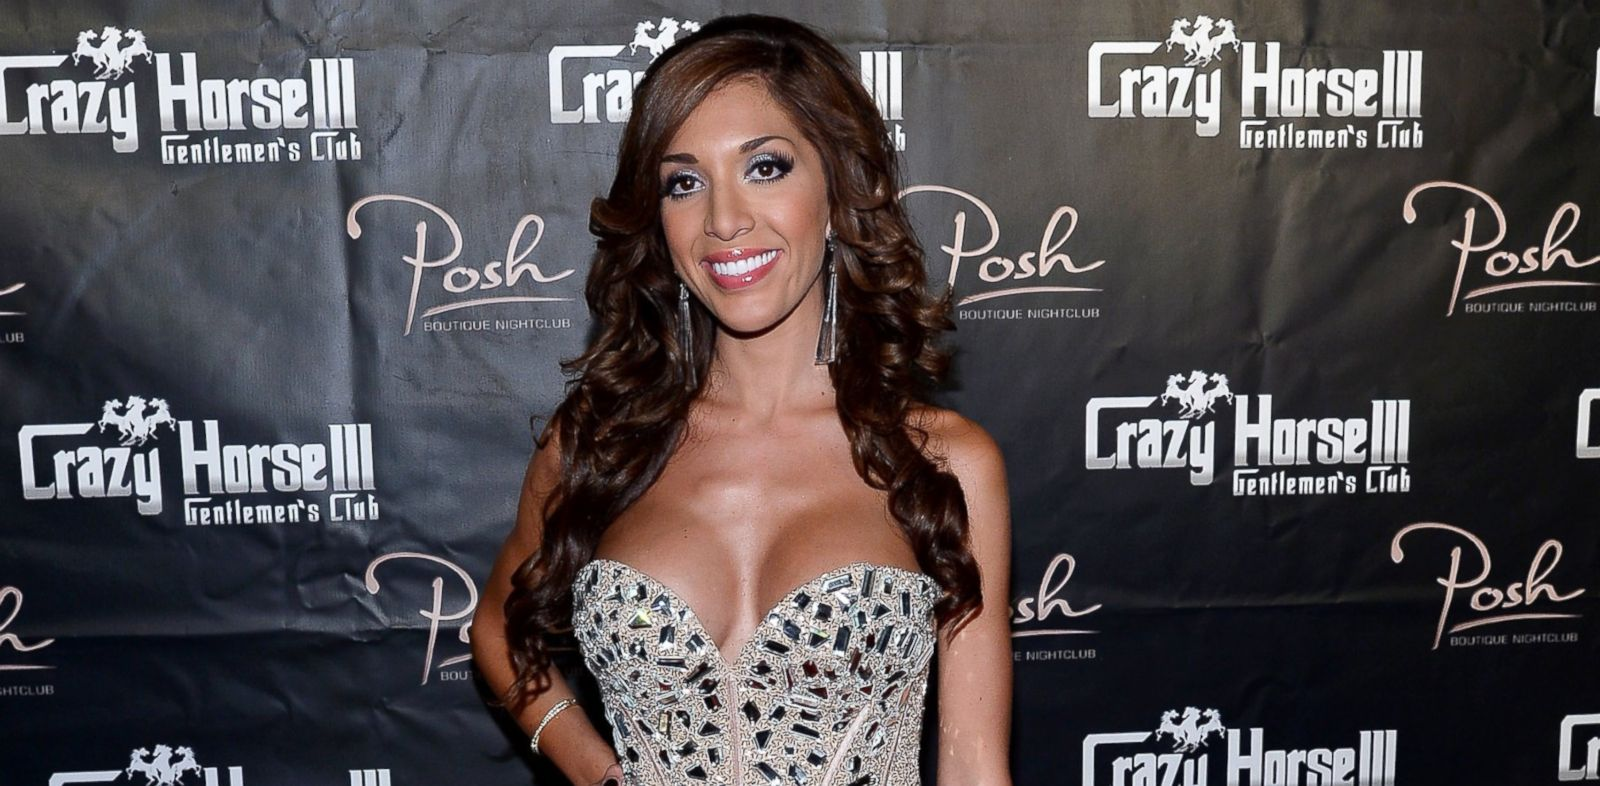 PHOTO: In this file photo, Farrah Abraham is pictured on Aug. 20, 2013 in Las Vegas, Nev.